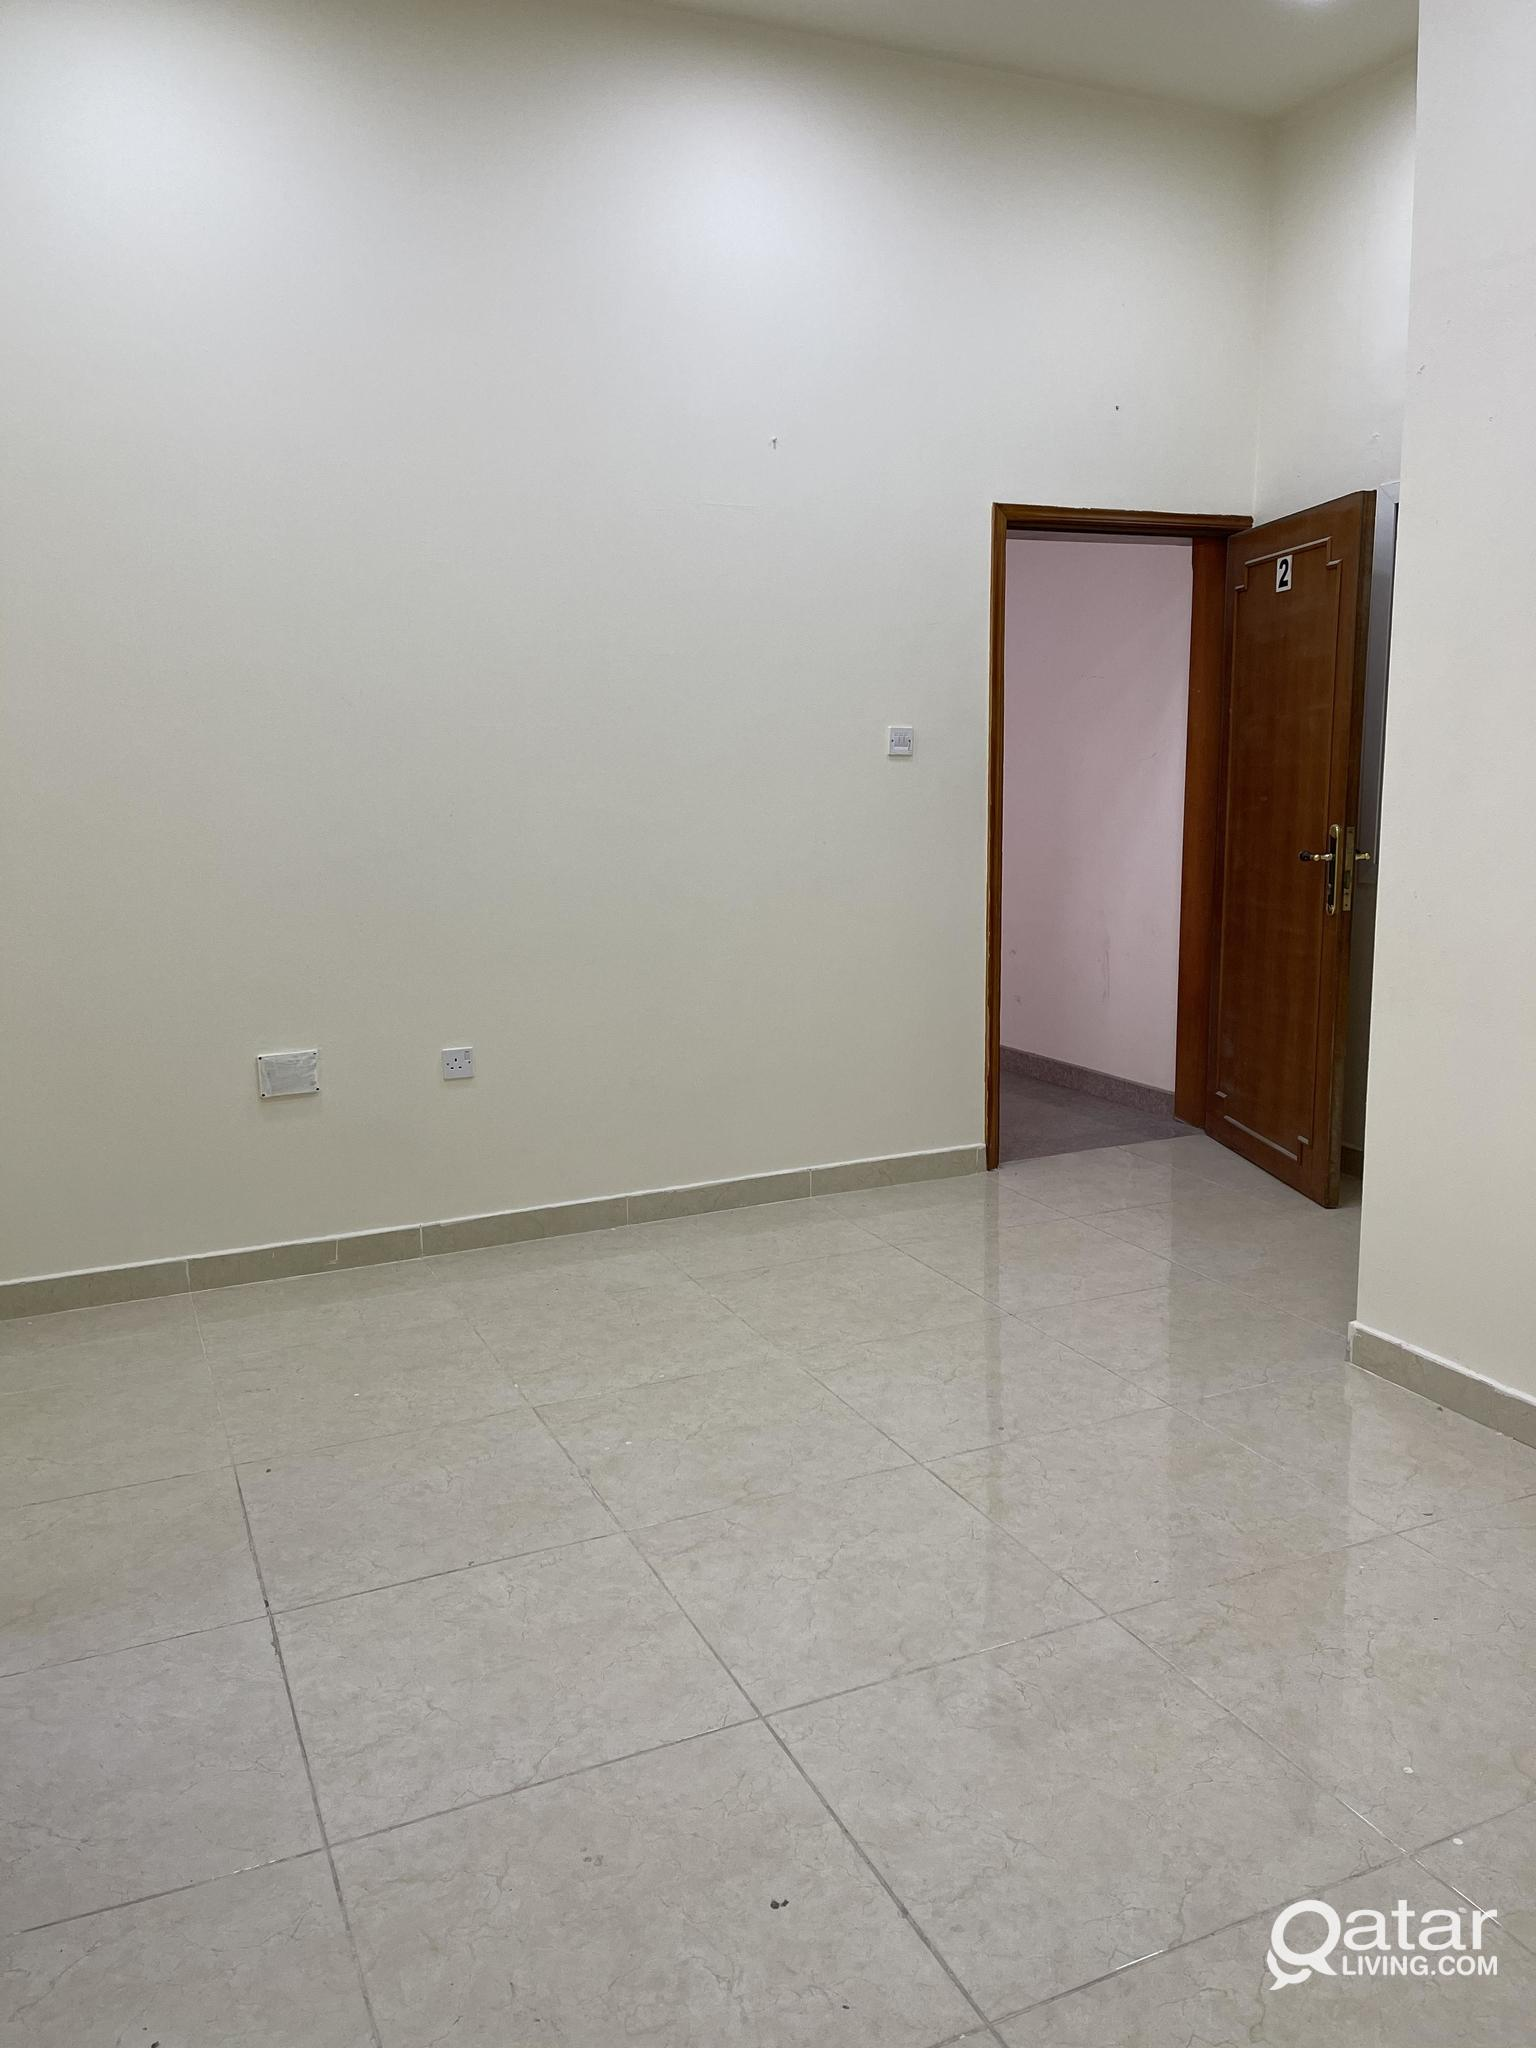 UNFURNISHED 3 BHK FLAT AVAILABLE IN MUNTAZAH NEAR